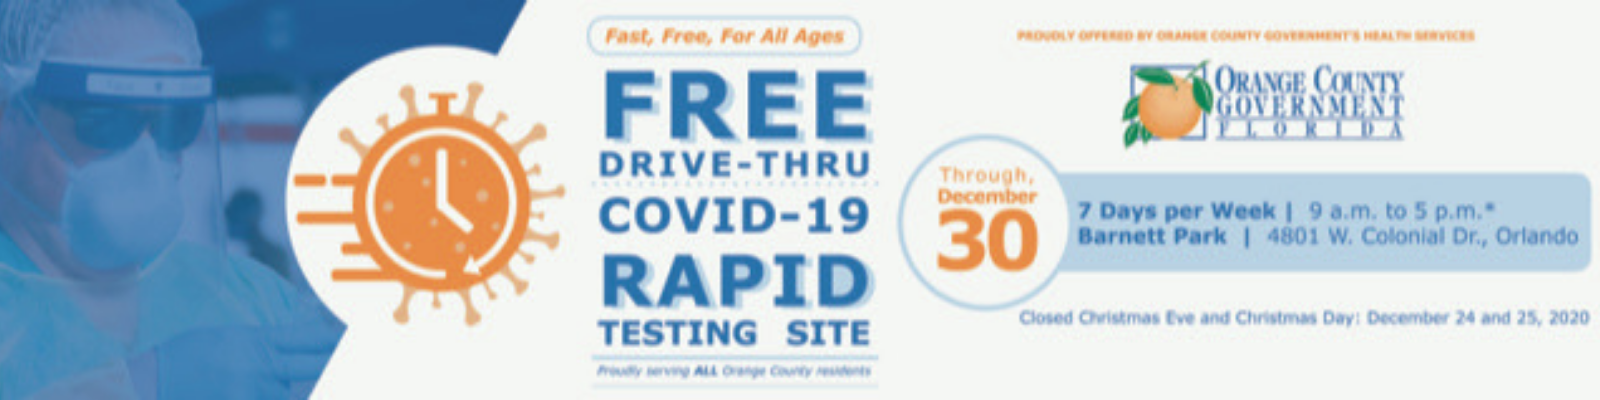 To learn more about Orange County's free COVID-19 testing, visit www.ocfl.net/testing.